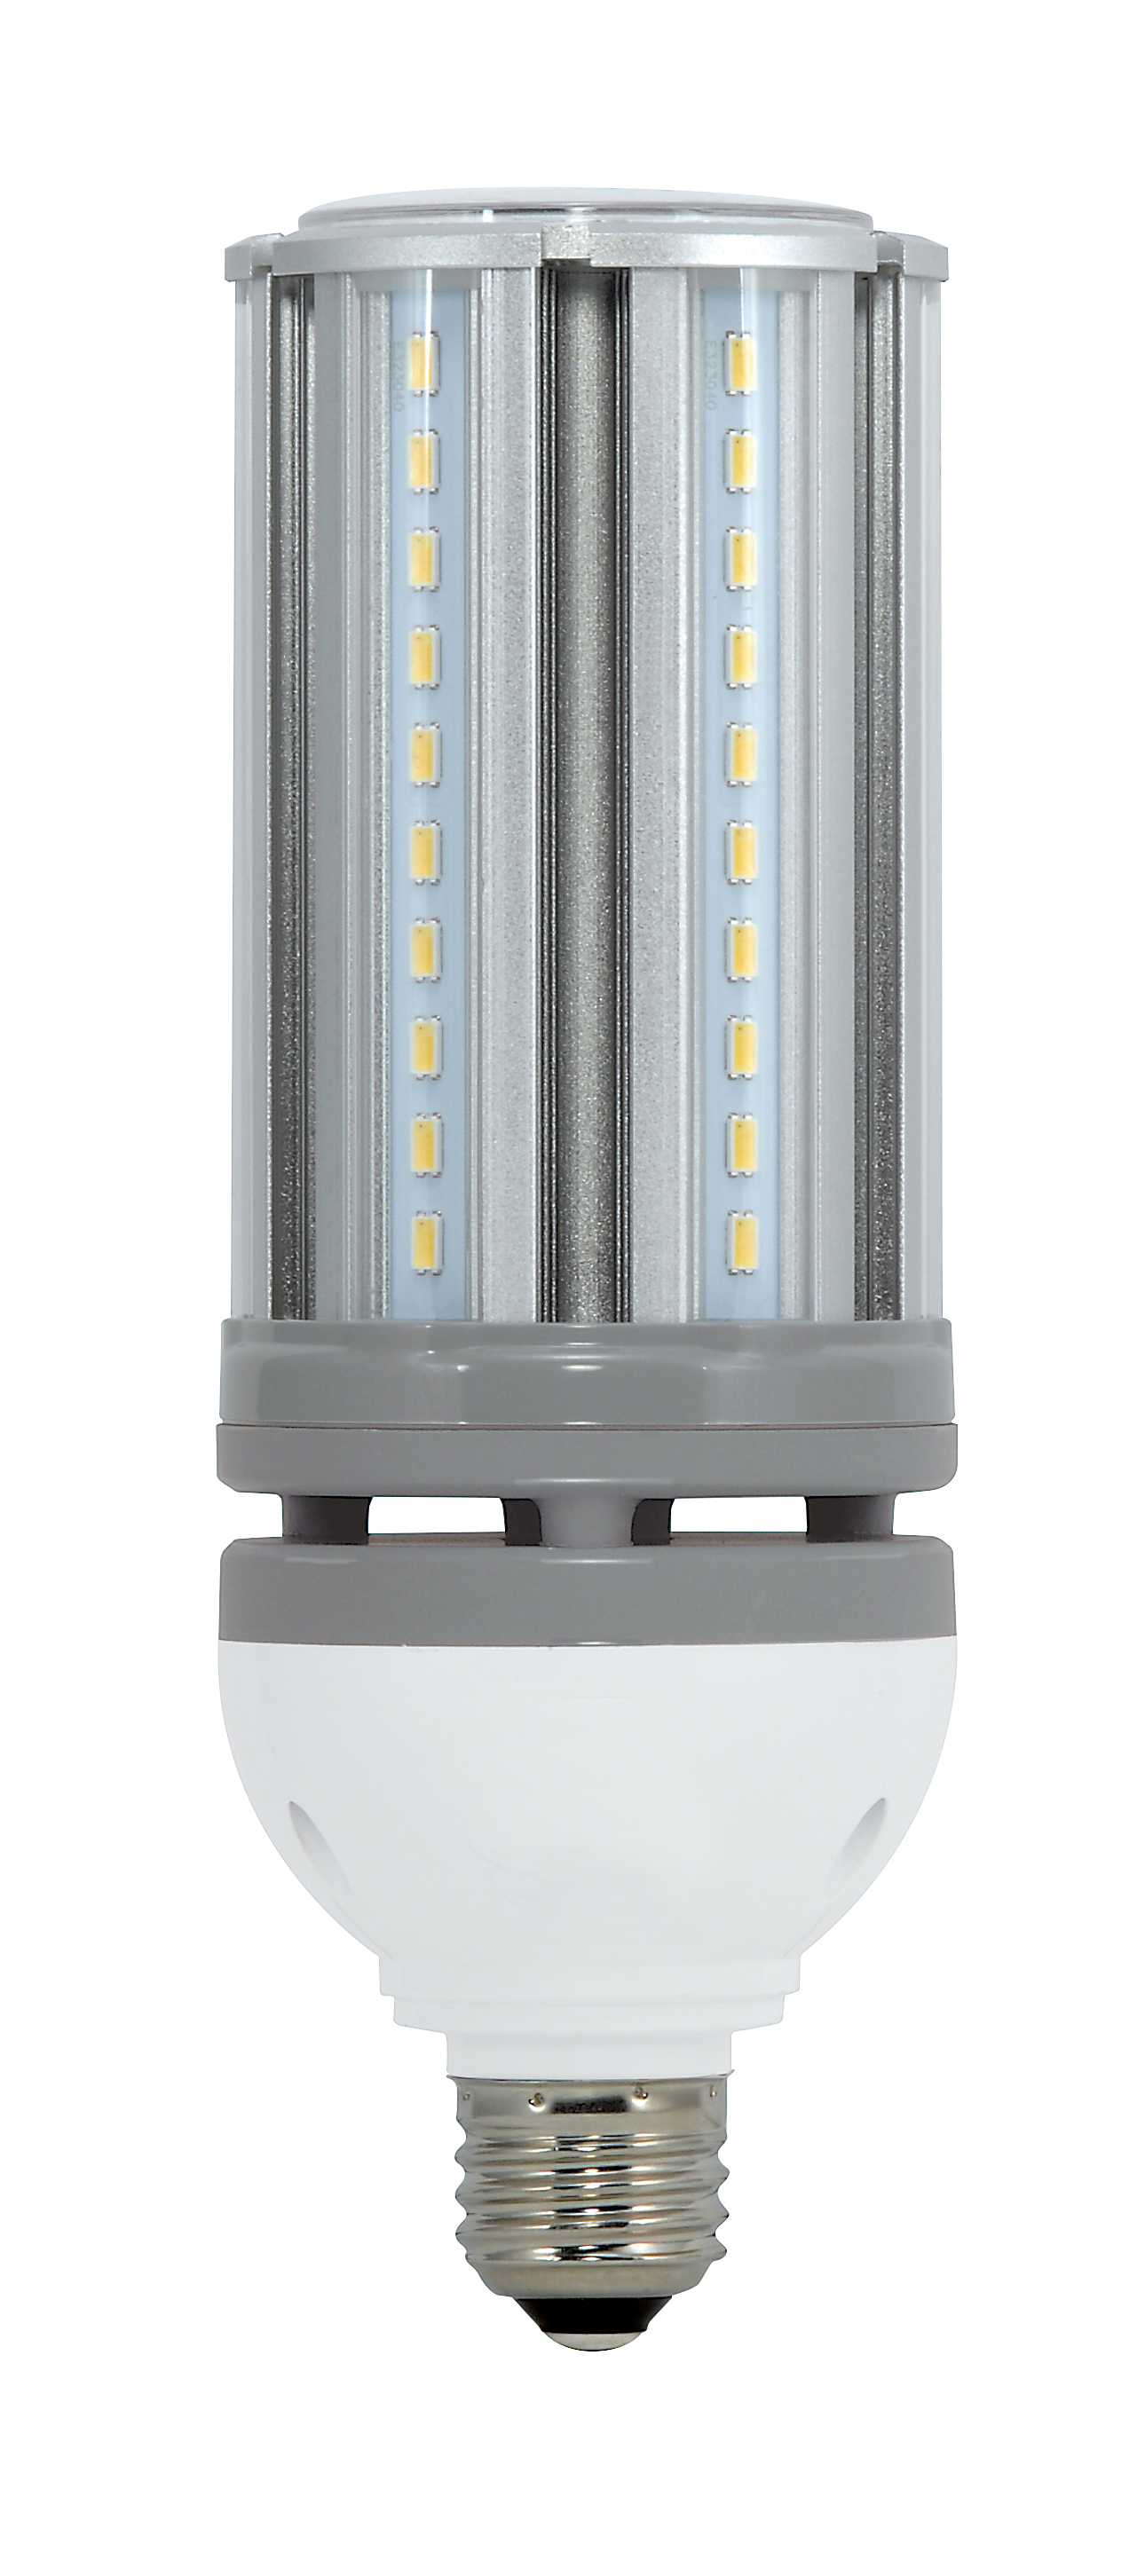 SATS29391 22W LED LAMP, SATCO